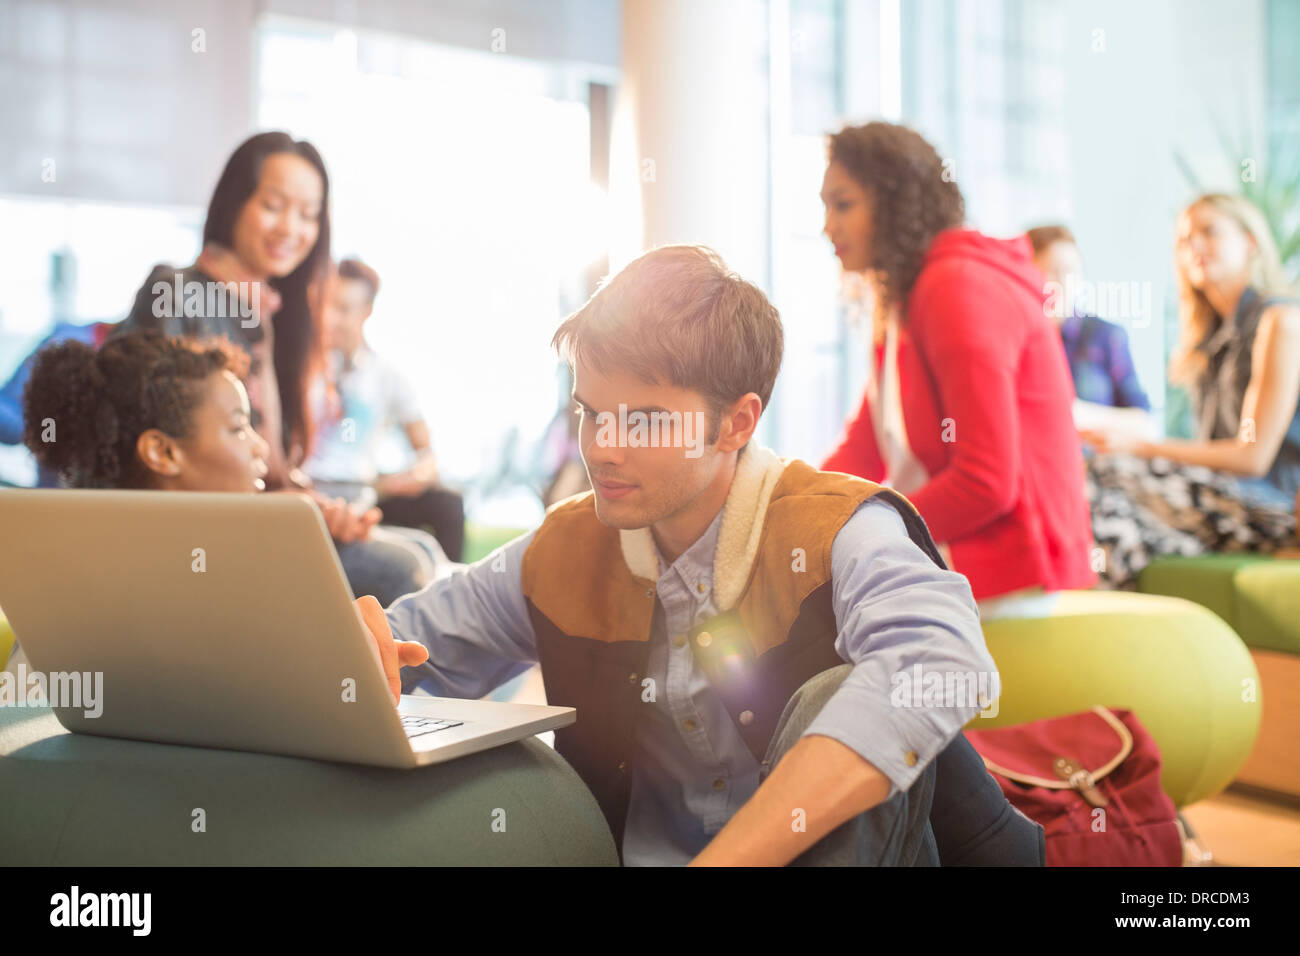 University student using laptop in lounge - Stock Image